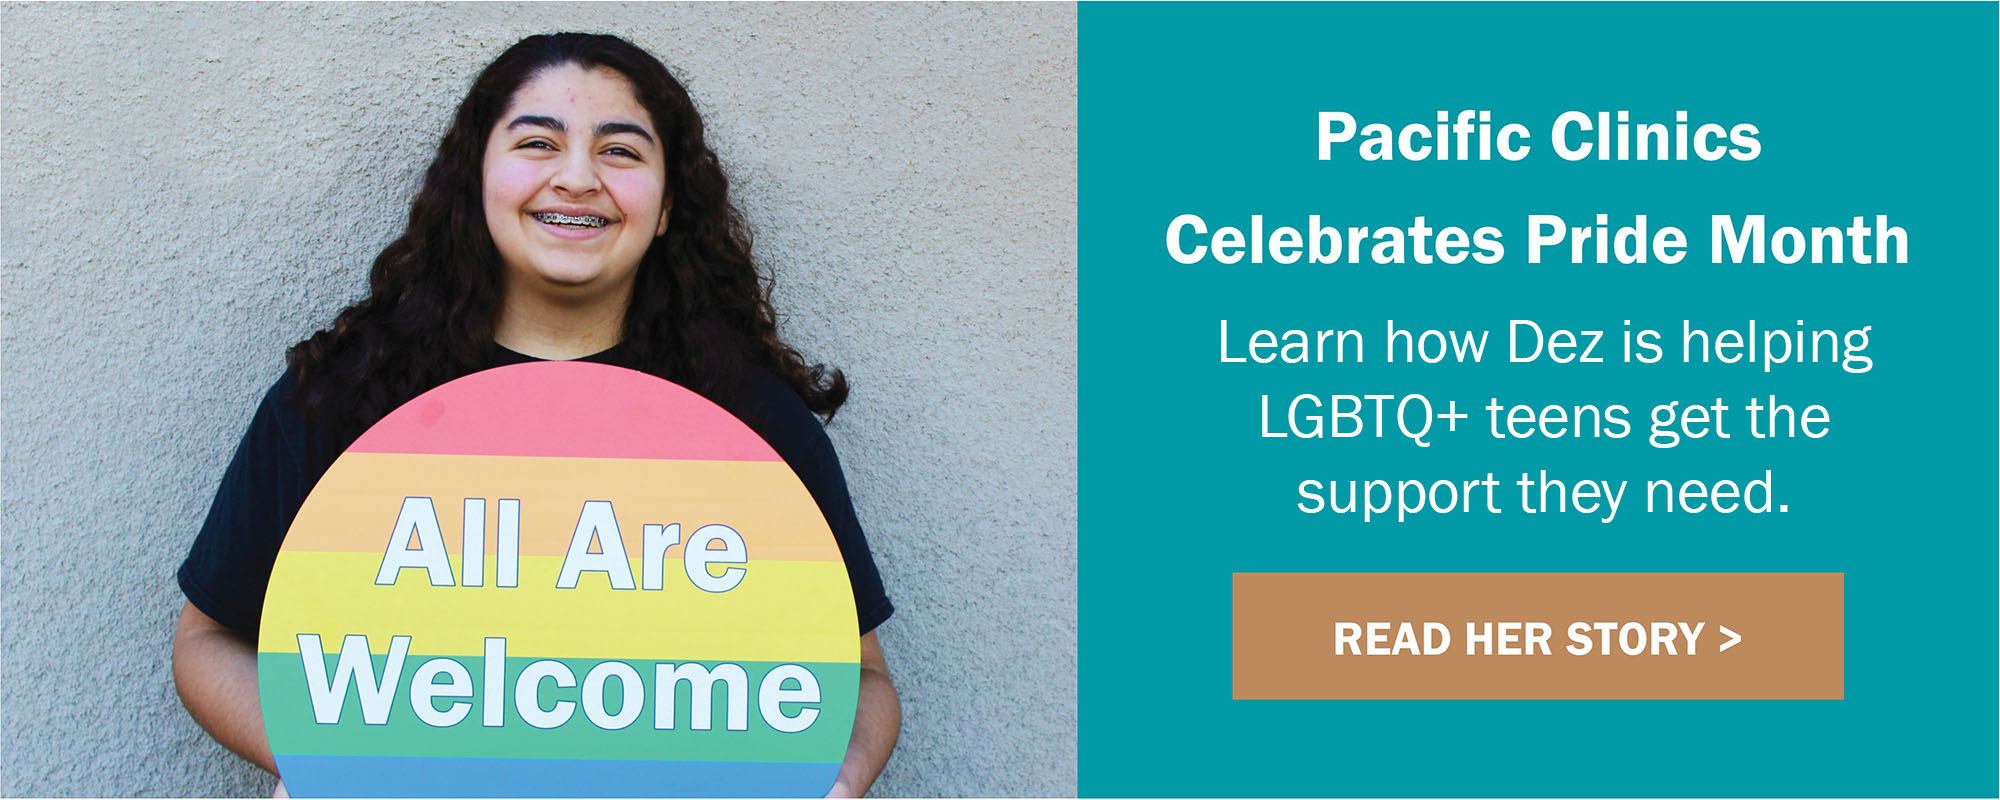 All Are Welcome: Learn how Dez is helping LGBTQ+ teens get the support they need.